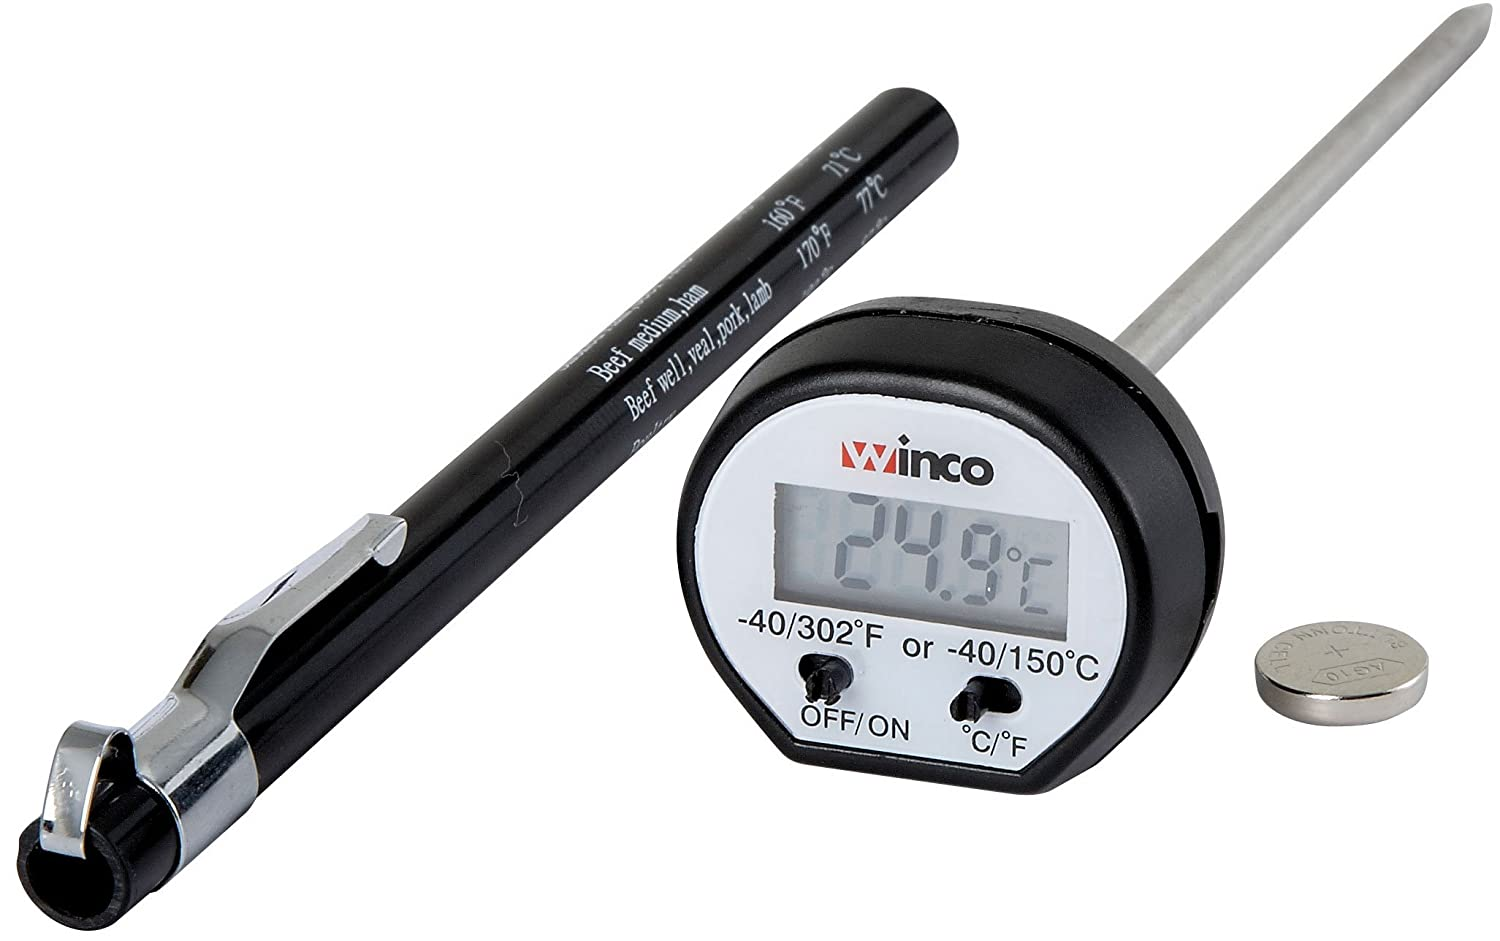 Amazon.com: Winco 1-1/4-Inch Dial Digital Thermometer with 4-3/4 ...